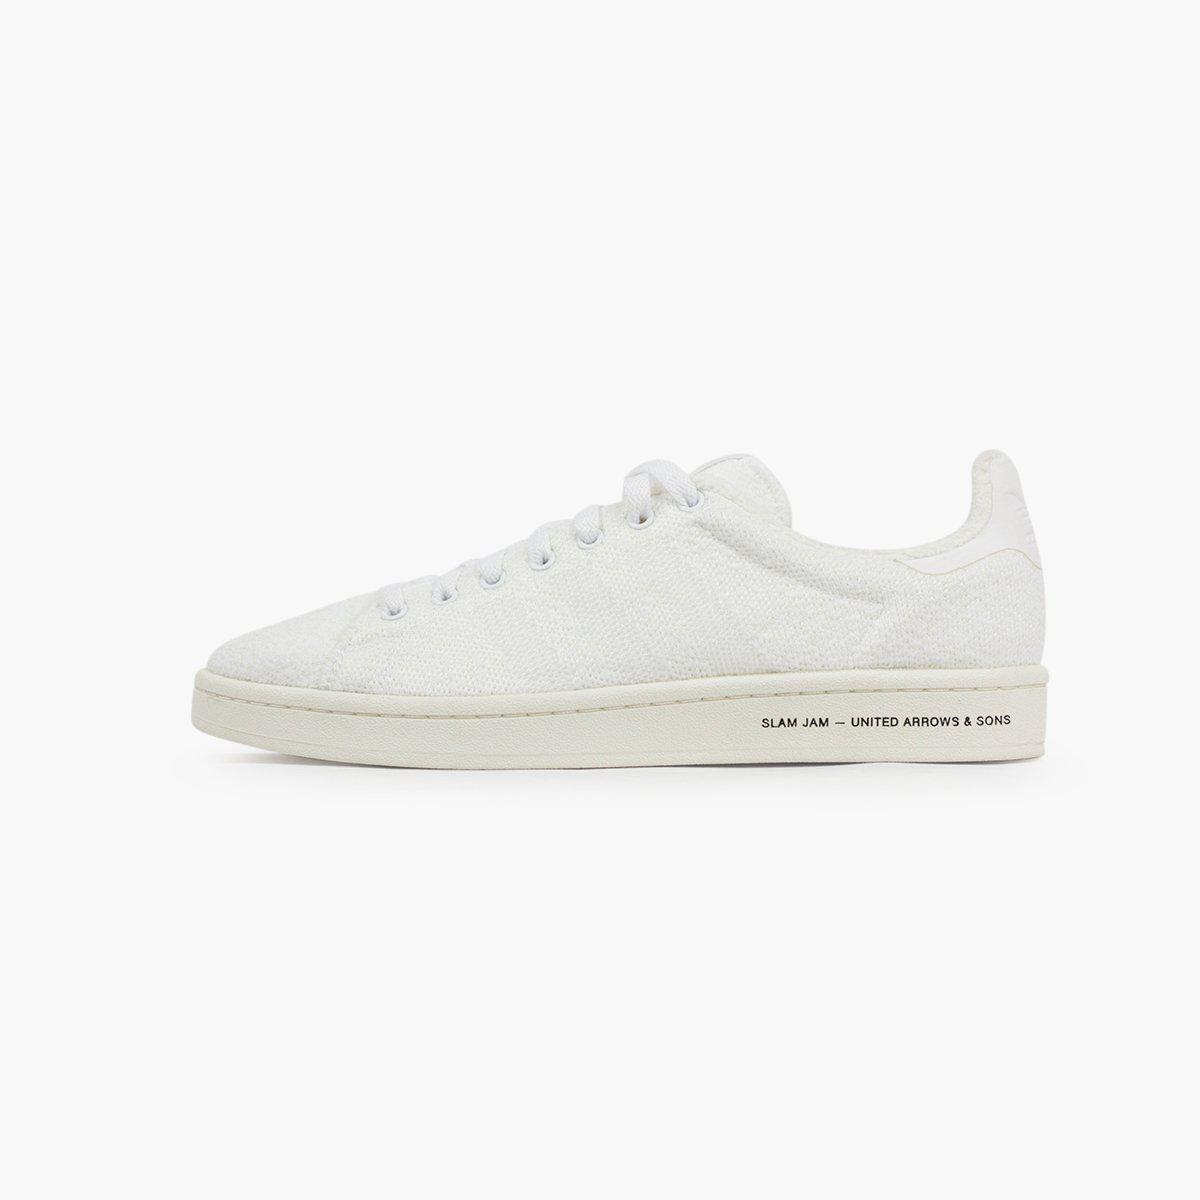 best website 81d11 b0ed9 adidas Originals. Mens White X United Arrows X Slam Jam Campus